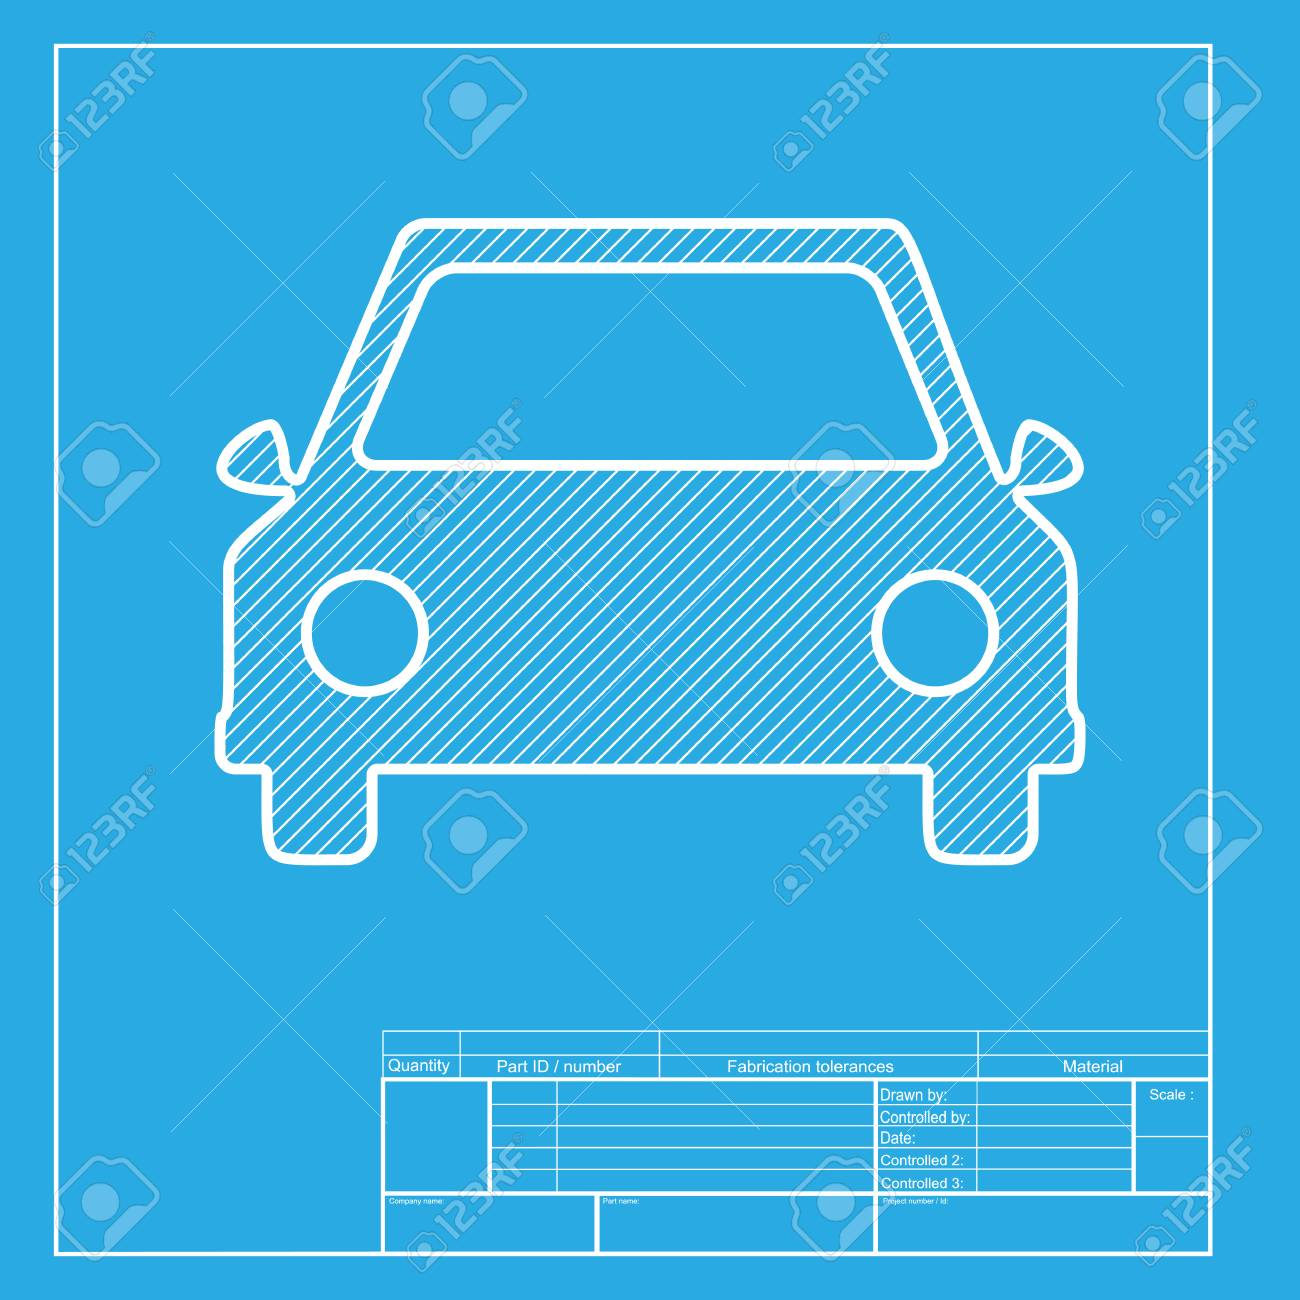 Car sign illustration white section of icon on blueprint template car sign illustration white section of icon on blueprint template stock vector 58751134 malvernweather Choice Image